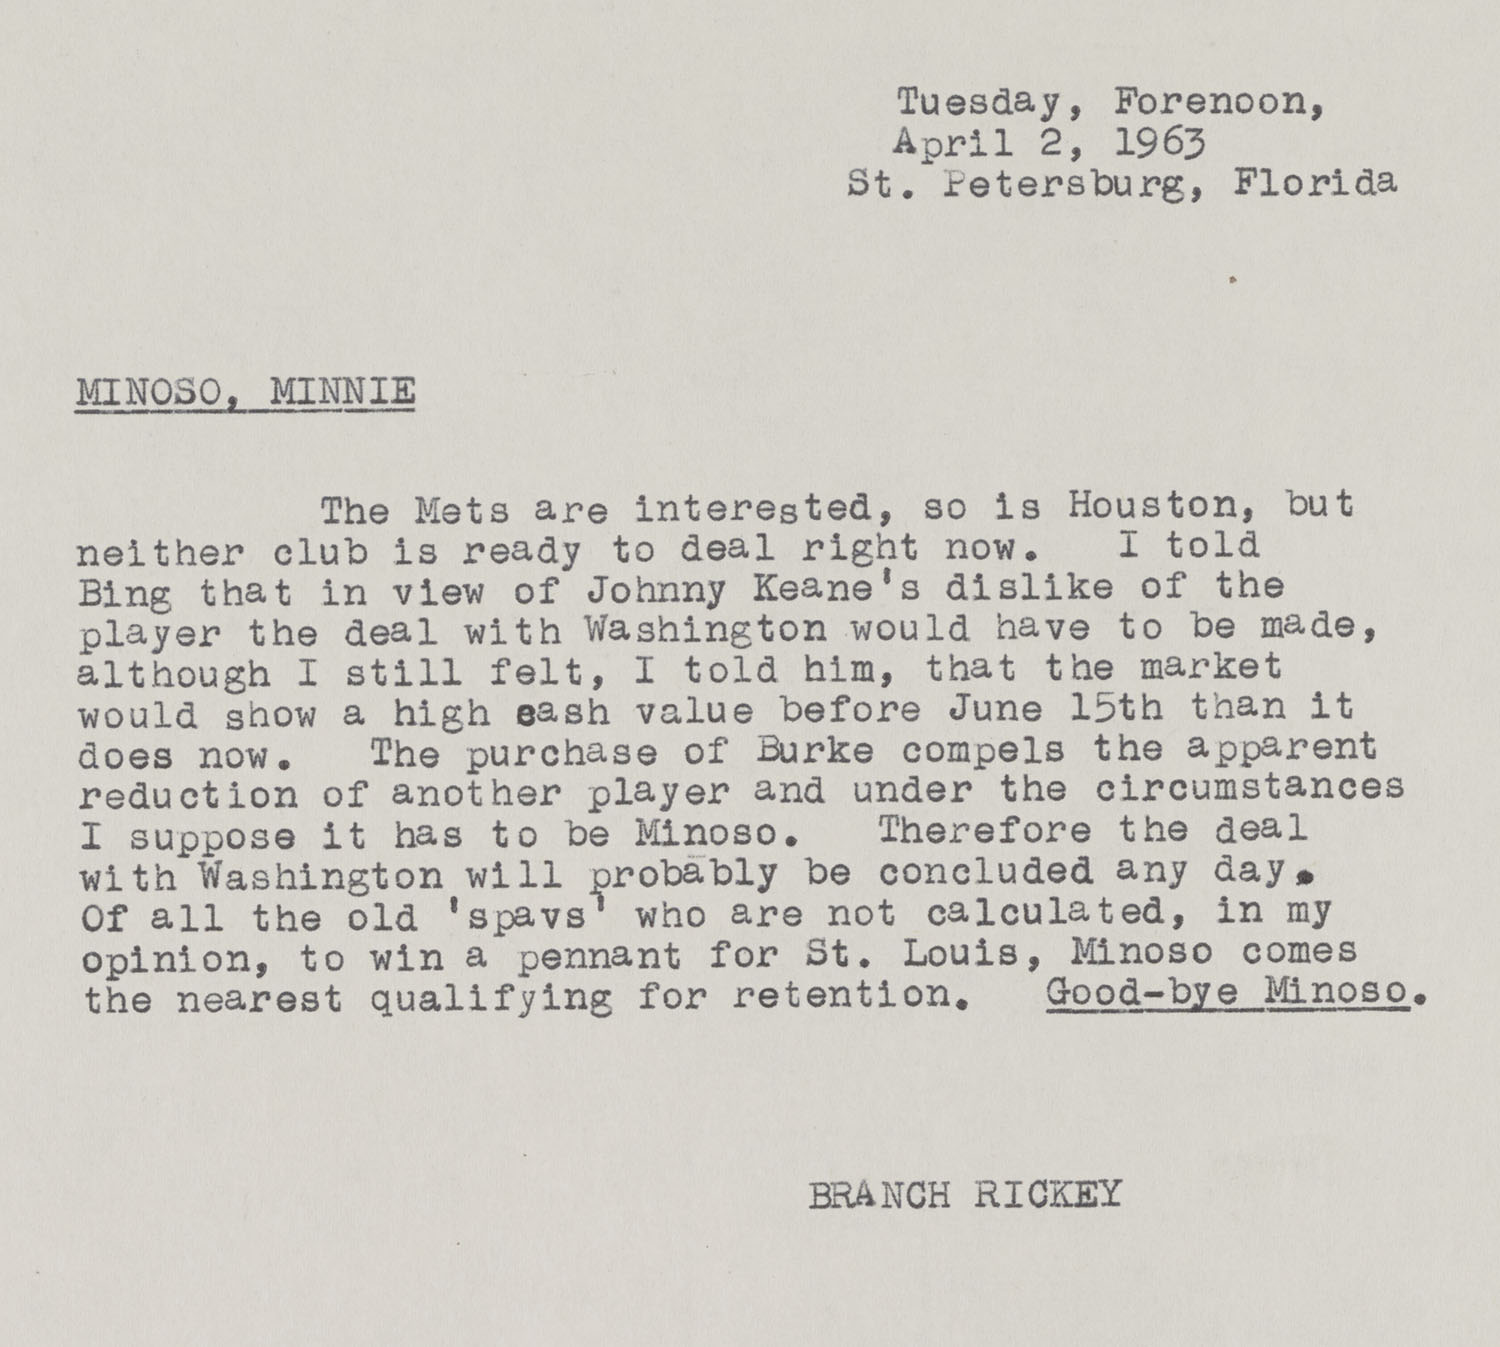 Branch Rickey letters